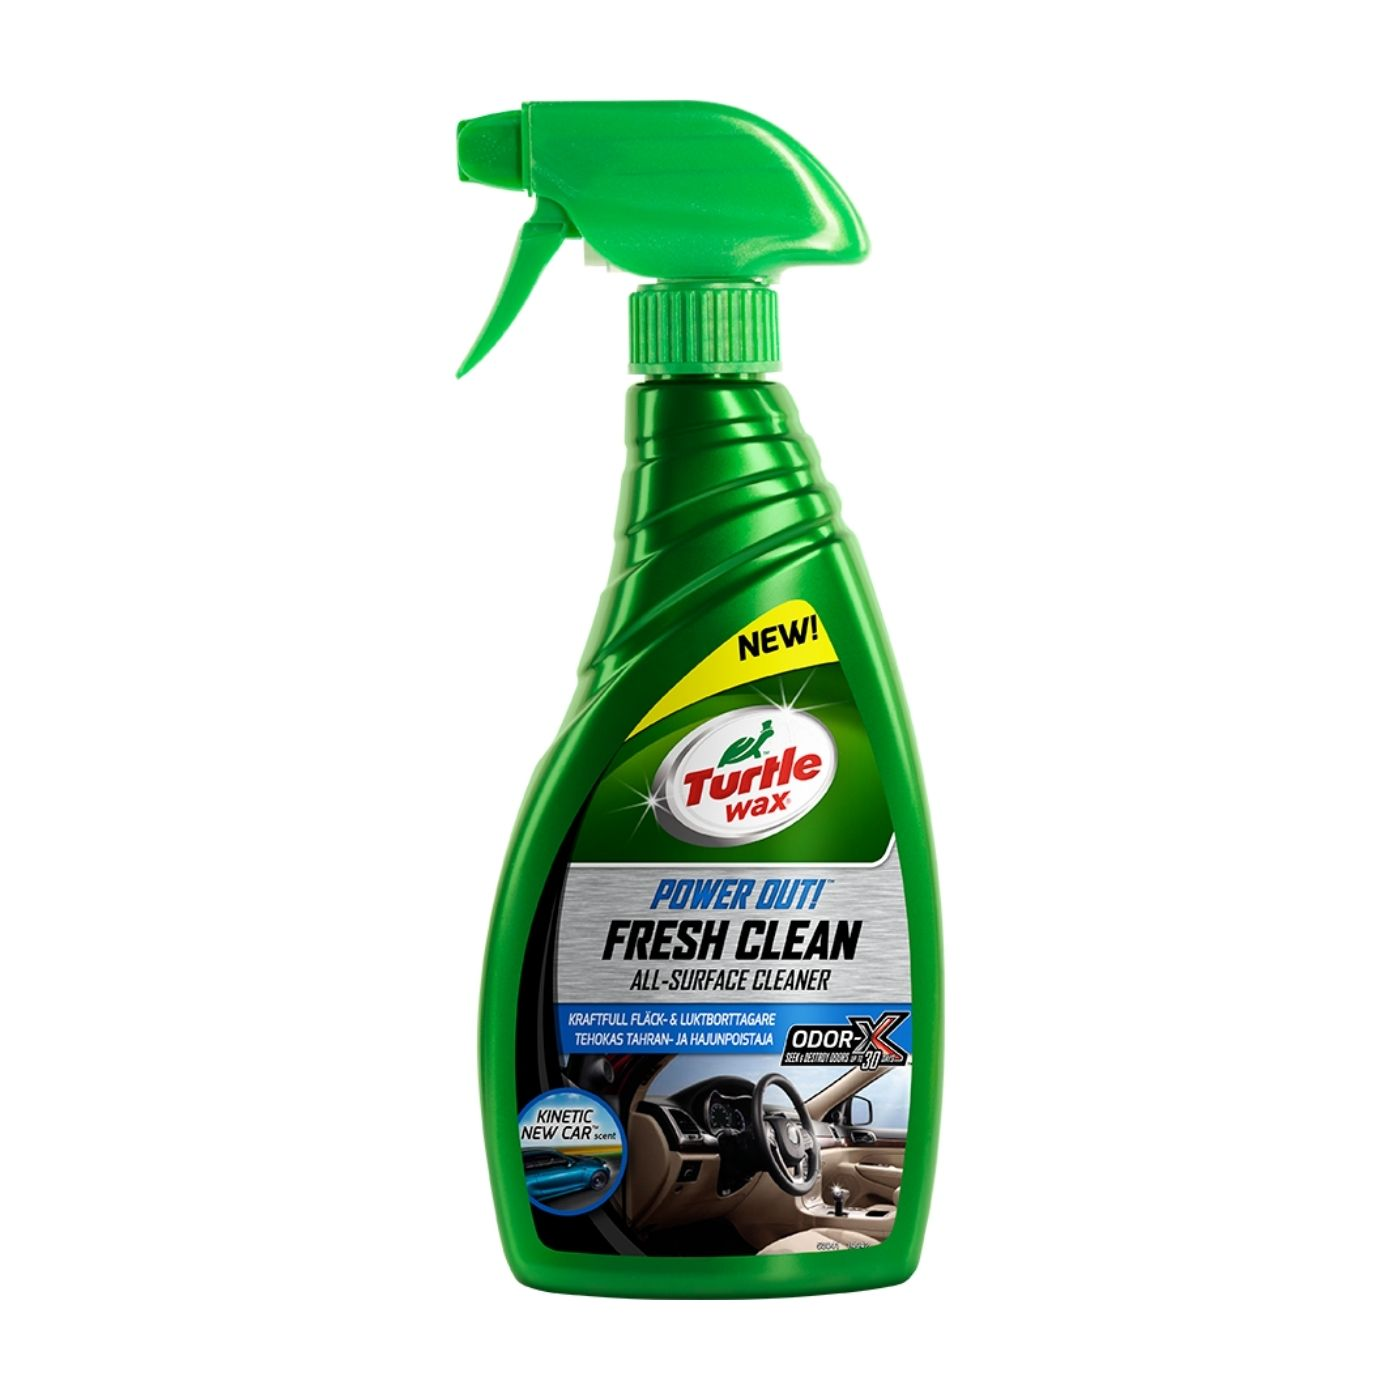 Allrengöring Turtle Wax Power Out Fresh Clean, 500 ml